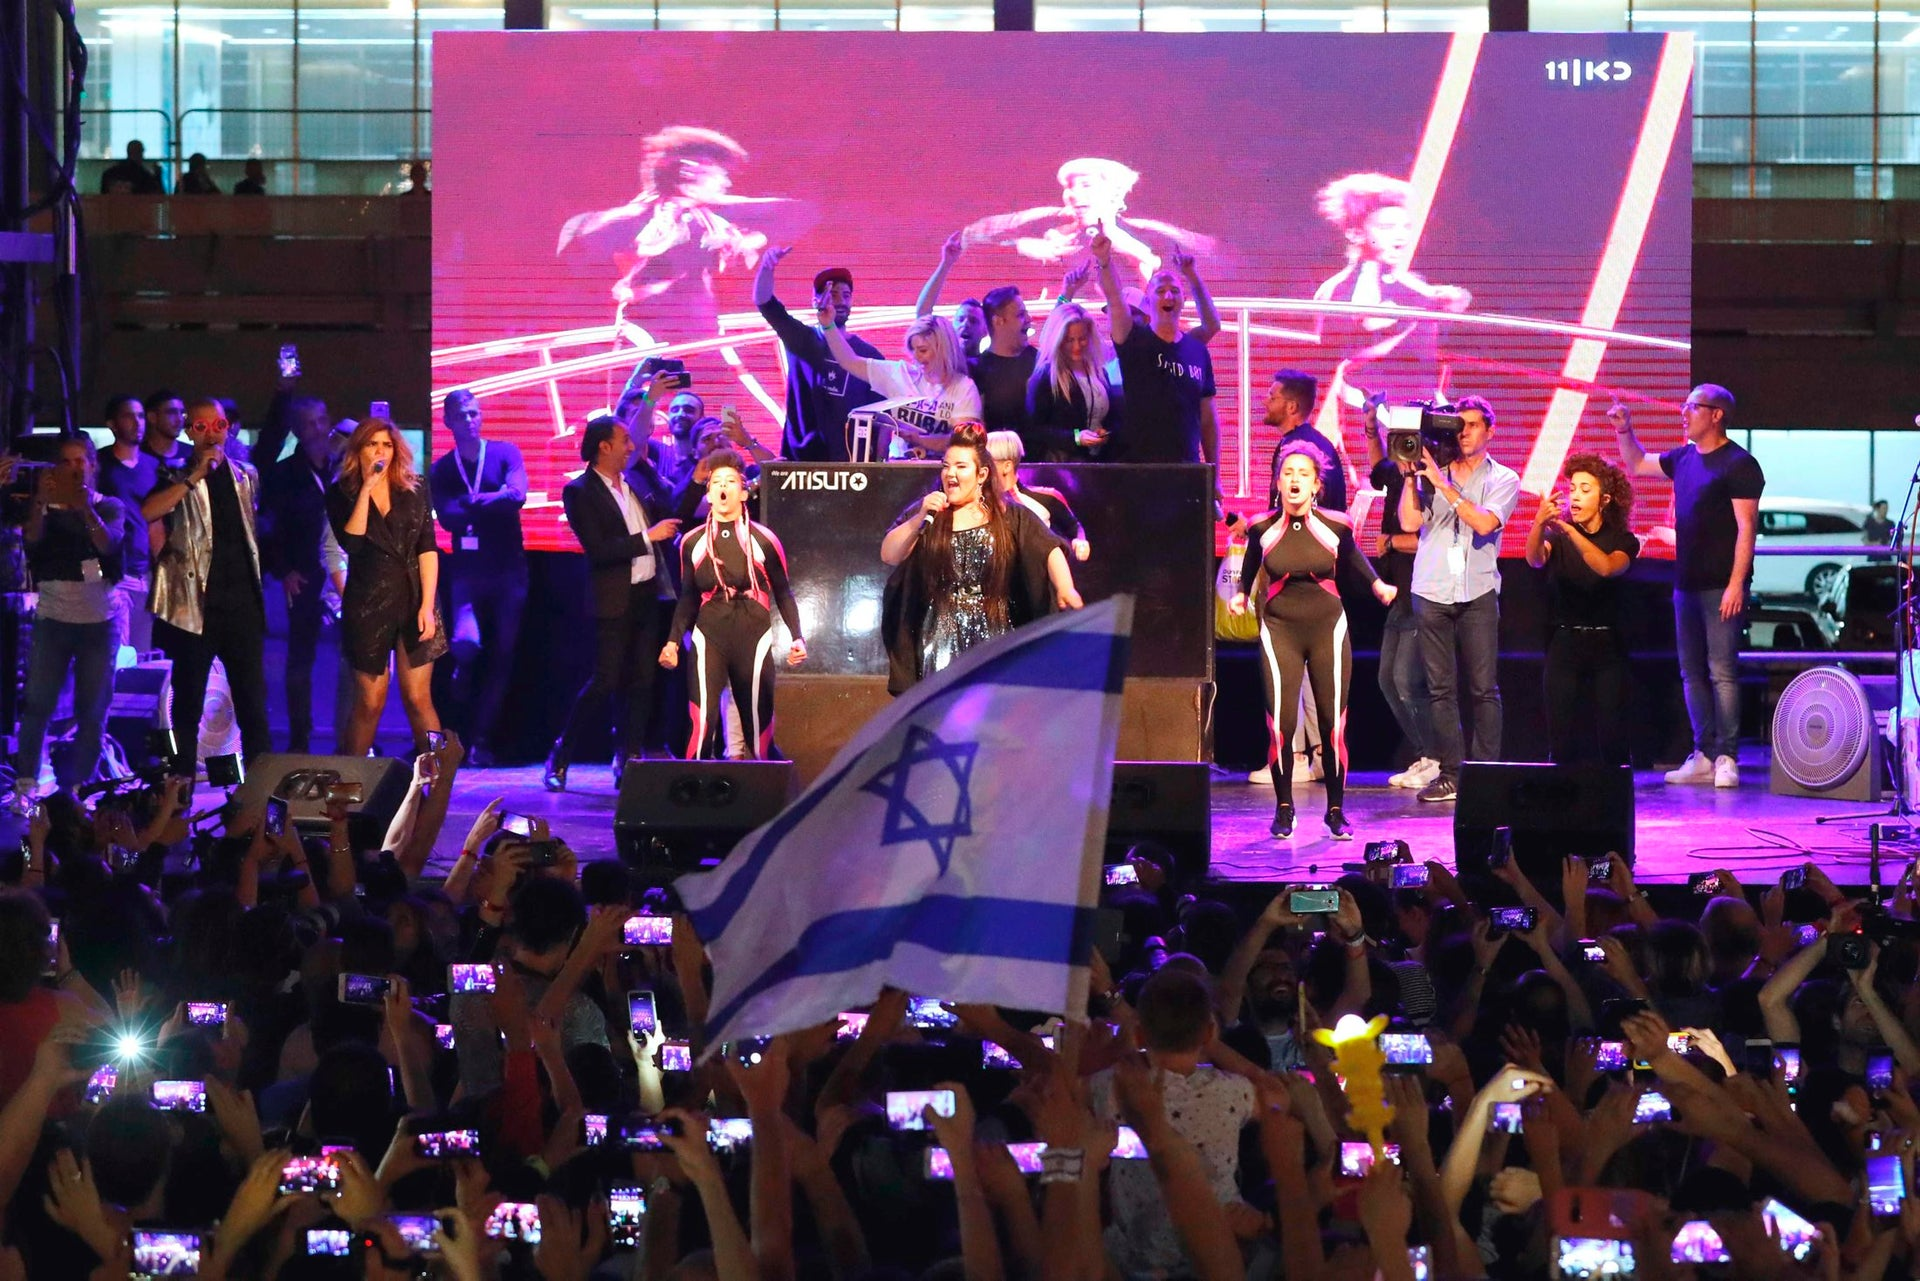 Israel's Netta Barzilai performs on stage a festive welcome concert in the Israeli coastal city of Tel Aviv on May 14, 2018 after winning the Eurovision Song Contest on Sunday in Lisbon, Portugal.